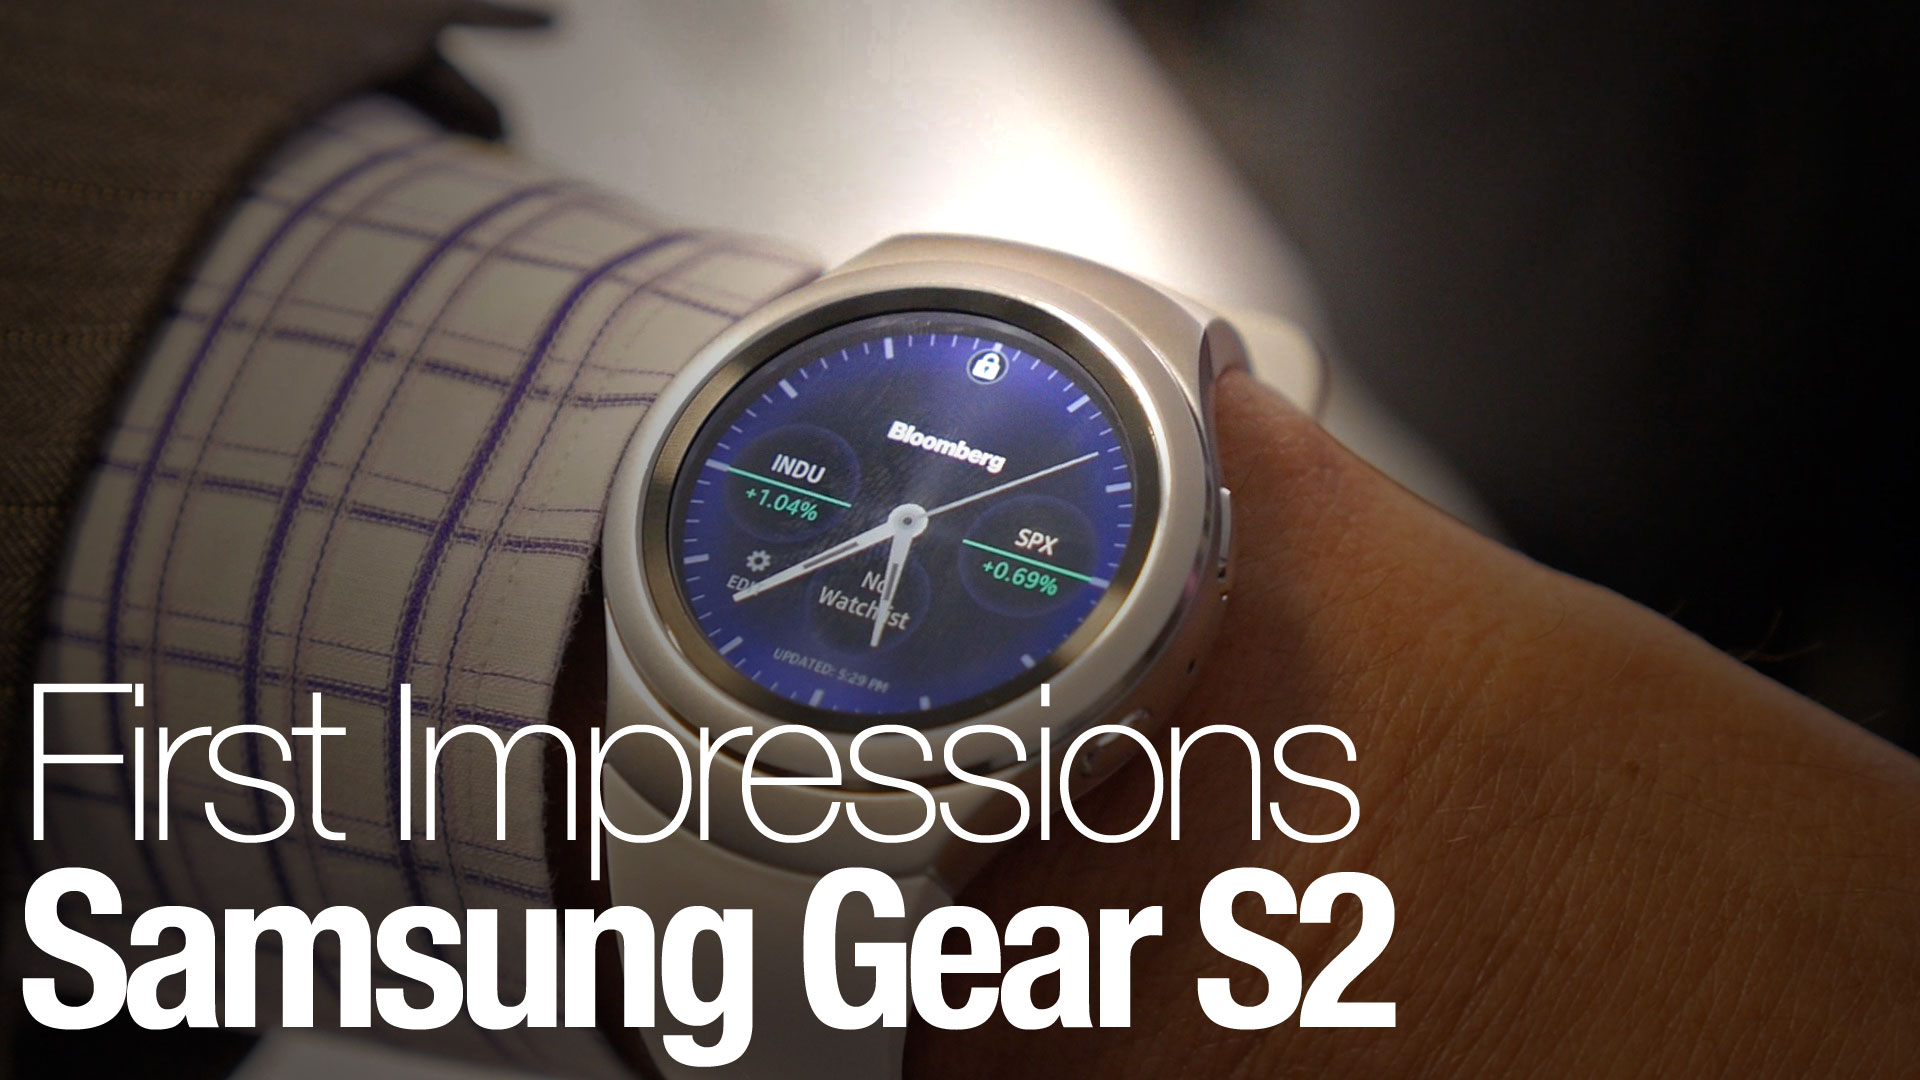 USA Today's Ed Baig gets hands-on time with Samsung's latest smartwatch, the Gear S2.